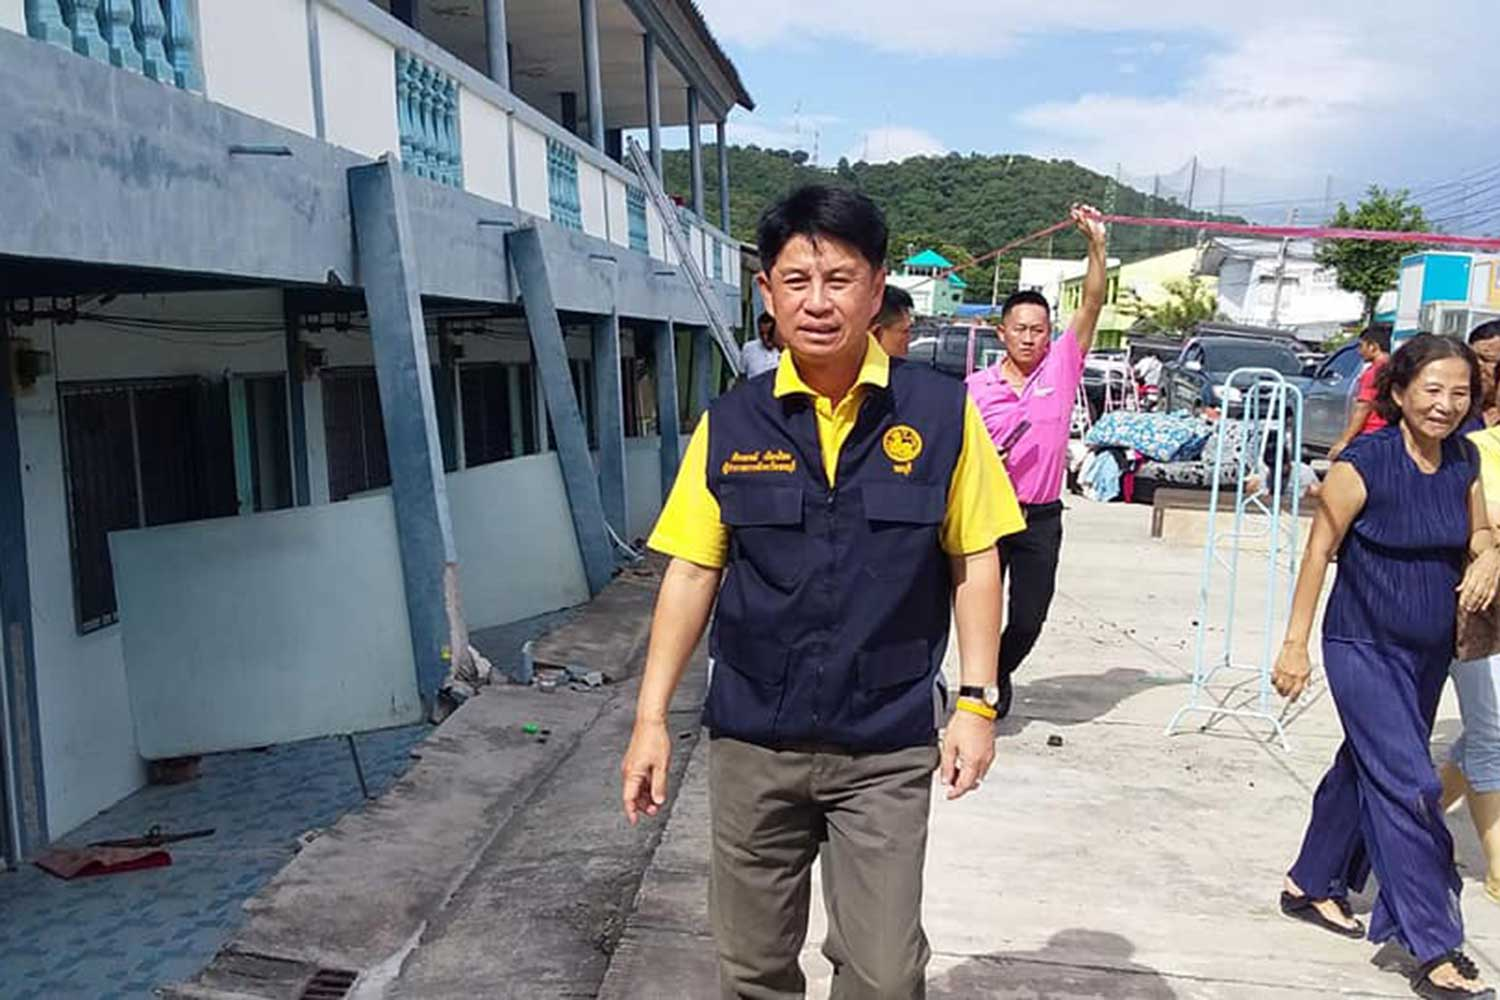 Chon Buri governor Pakkhathorn Thianchai leads officials to inspect a seaside building containing 16 rooms for rent in Muang district of Chon Buri after it subsided on Monday afternoon. (Photo taken from @ChonburiPr Facebook page)